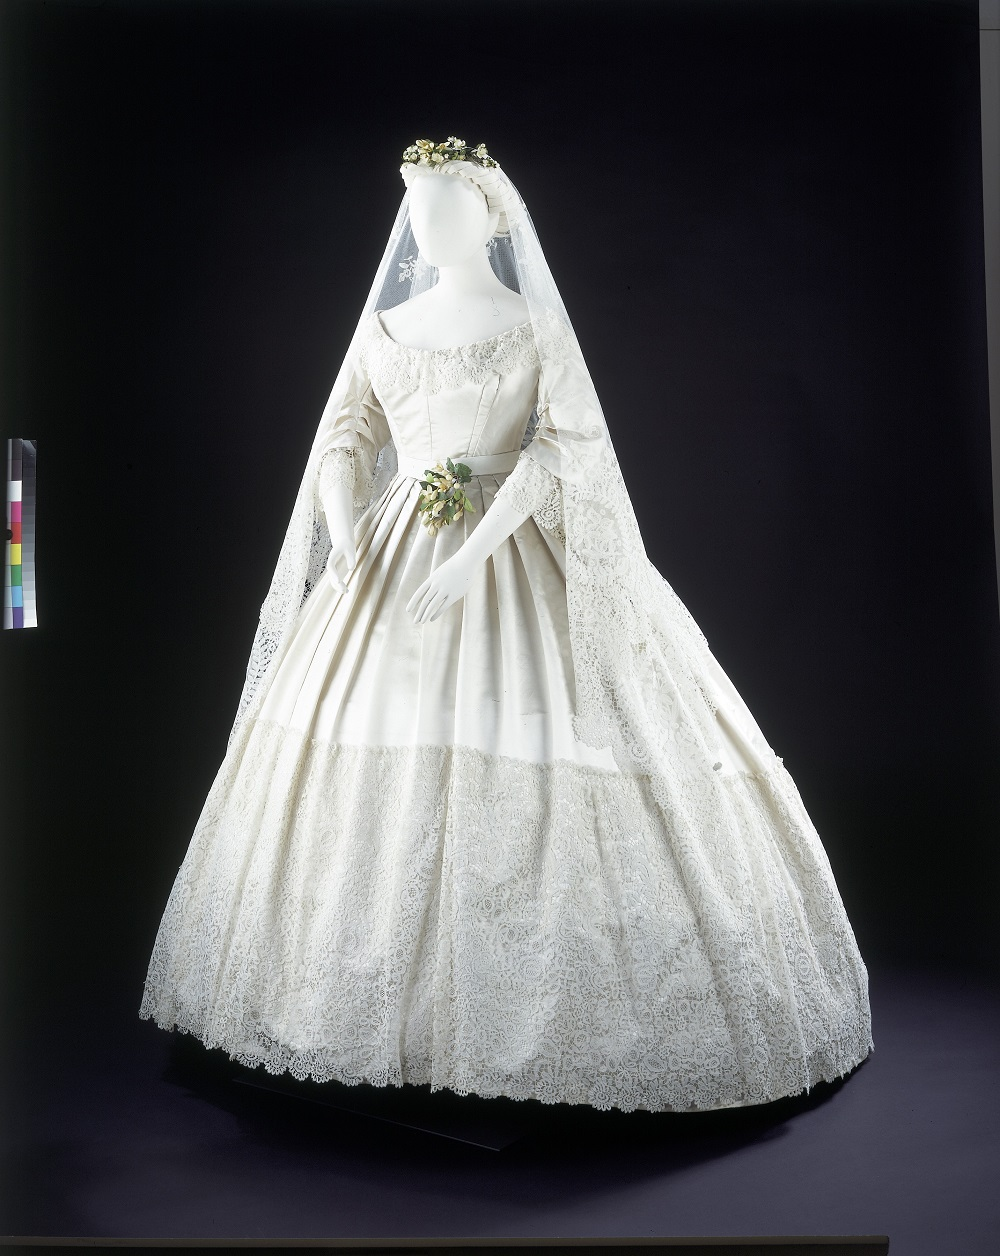 Not All White | Victoria and Albert Museum